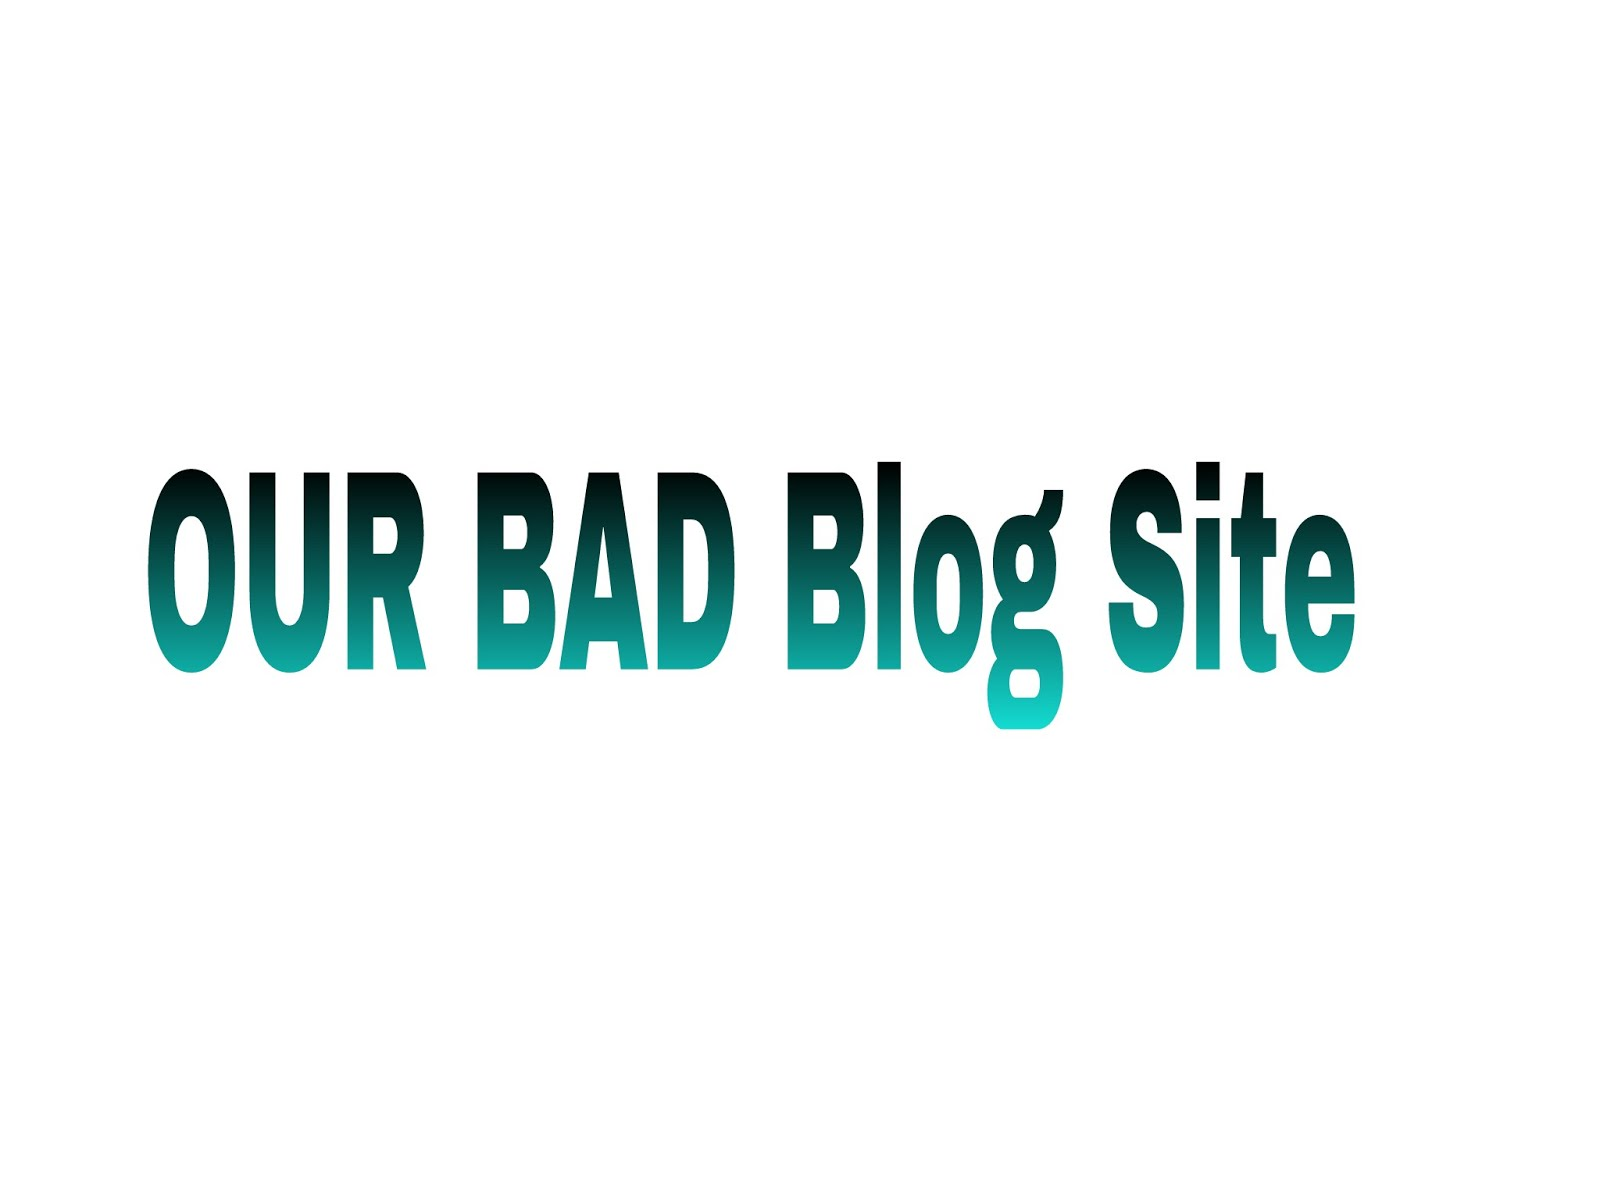 Our Bad Blog Spot